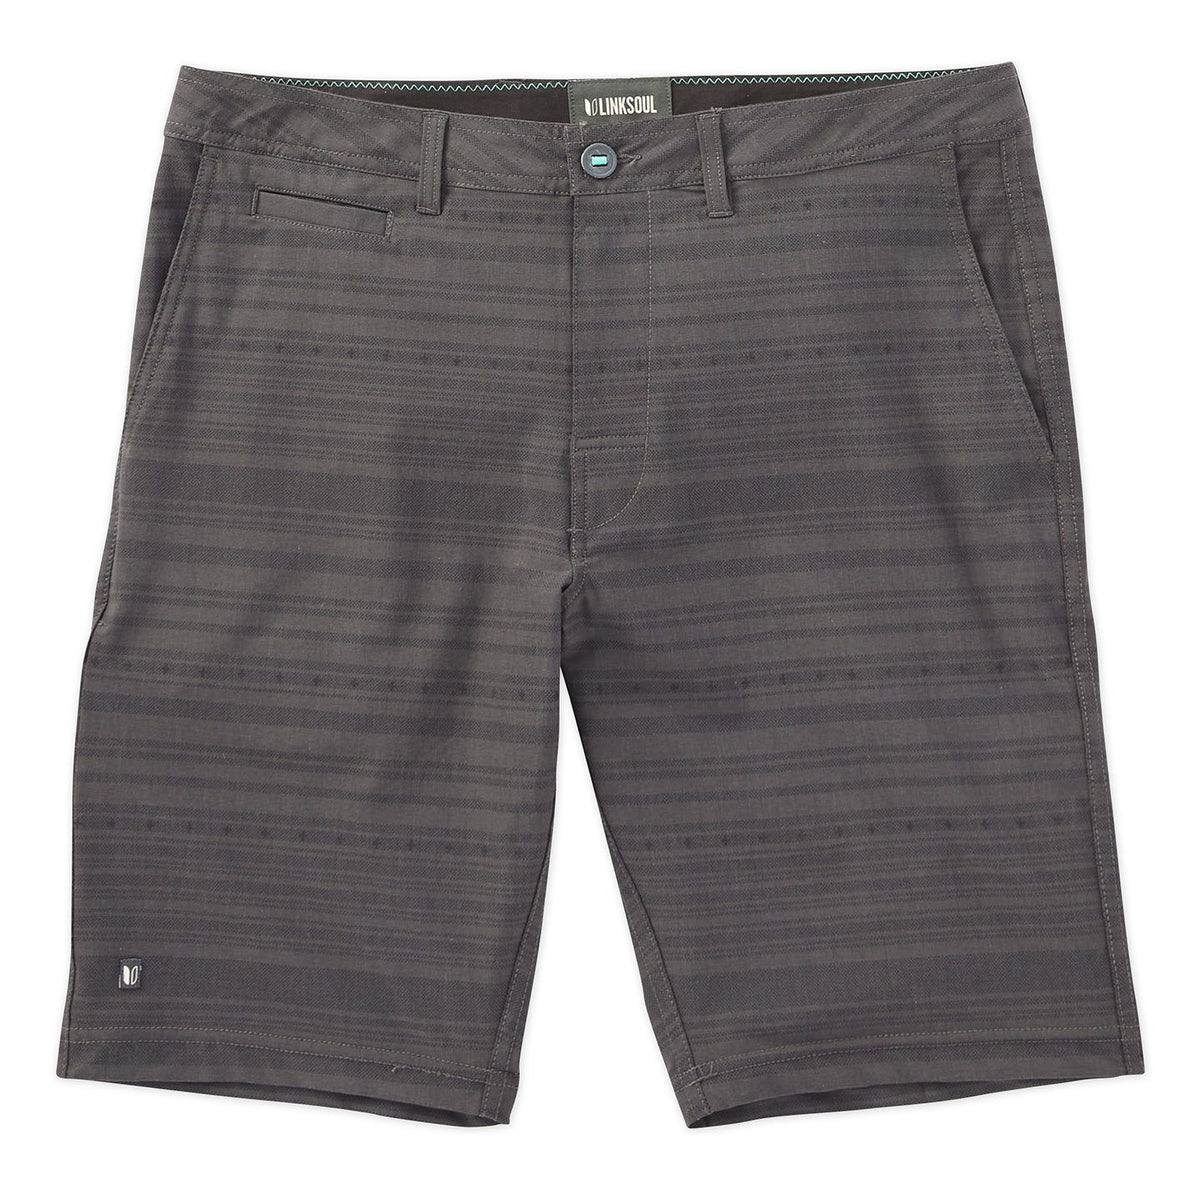 Line Motif Boardwalker Short